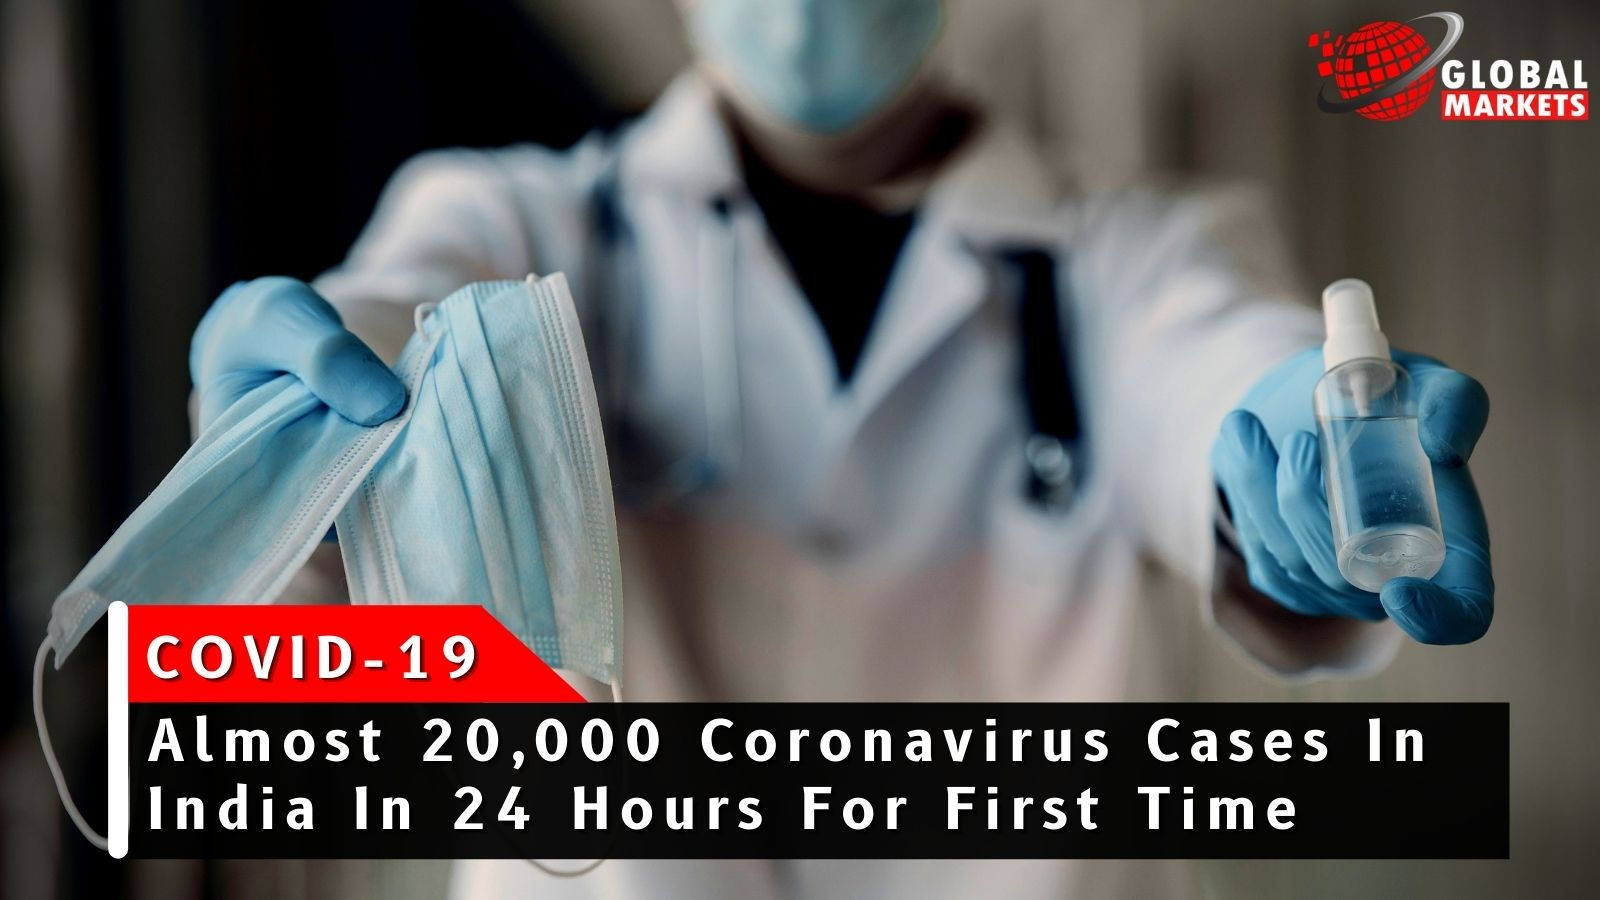 Almost 20,000 Covid-19 Cases In India In 24 Hours For First Time